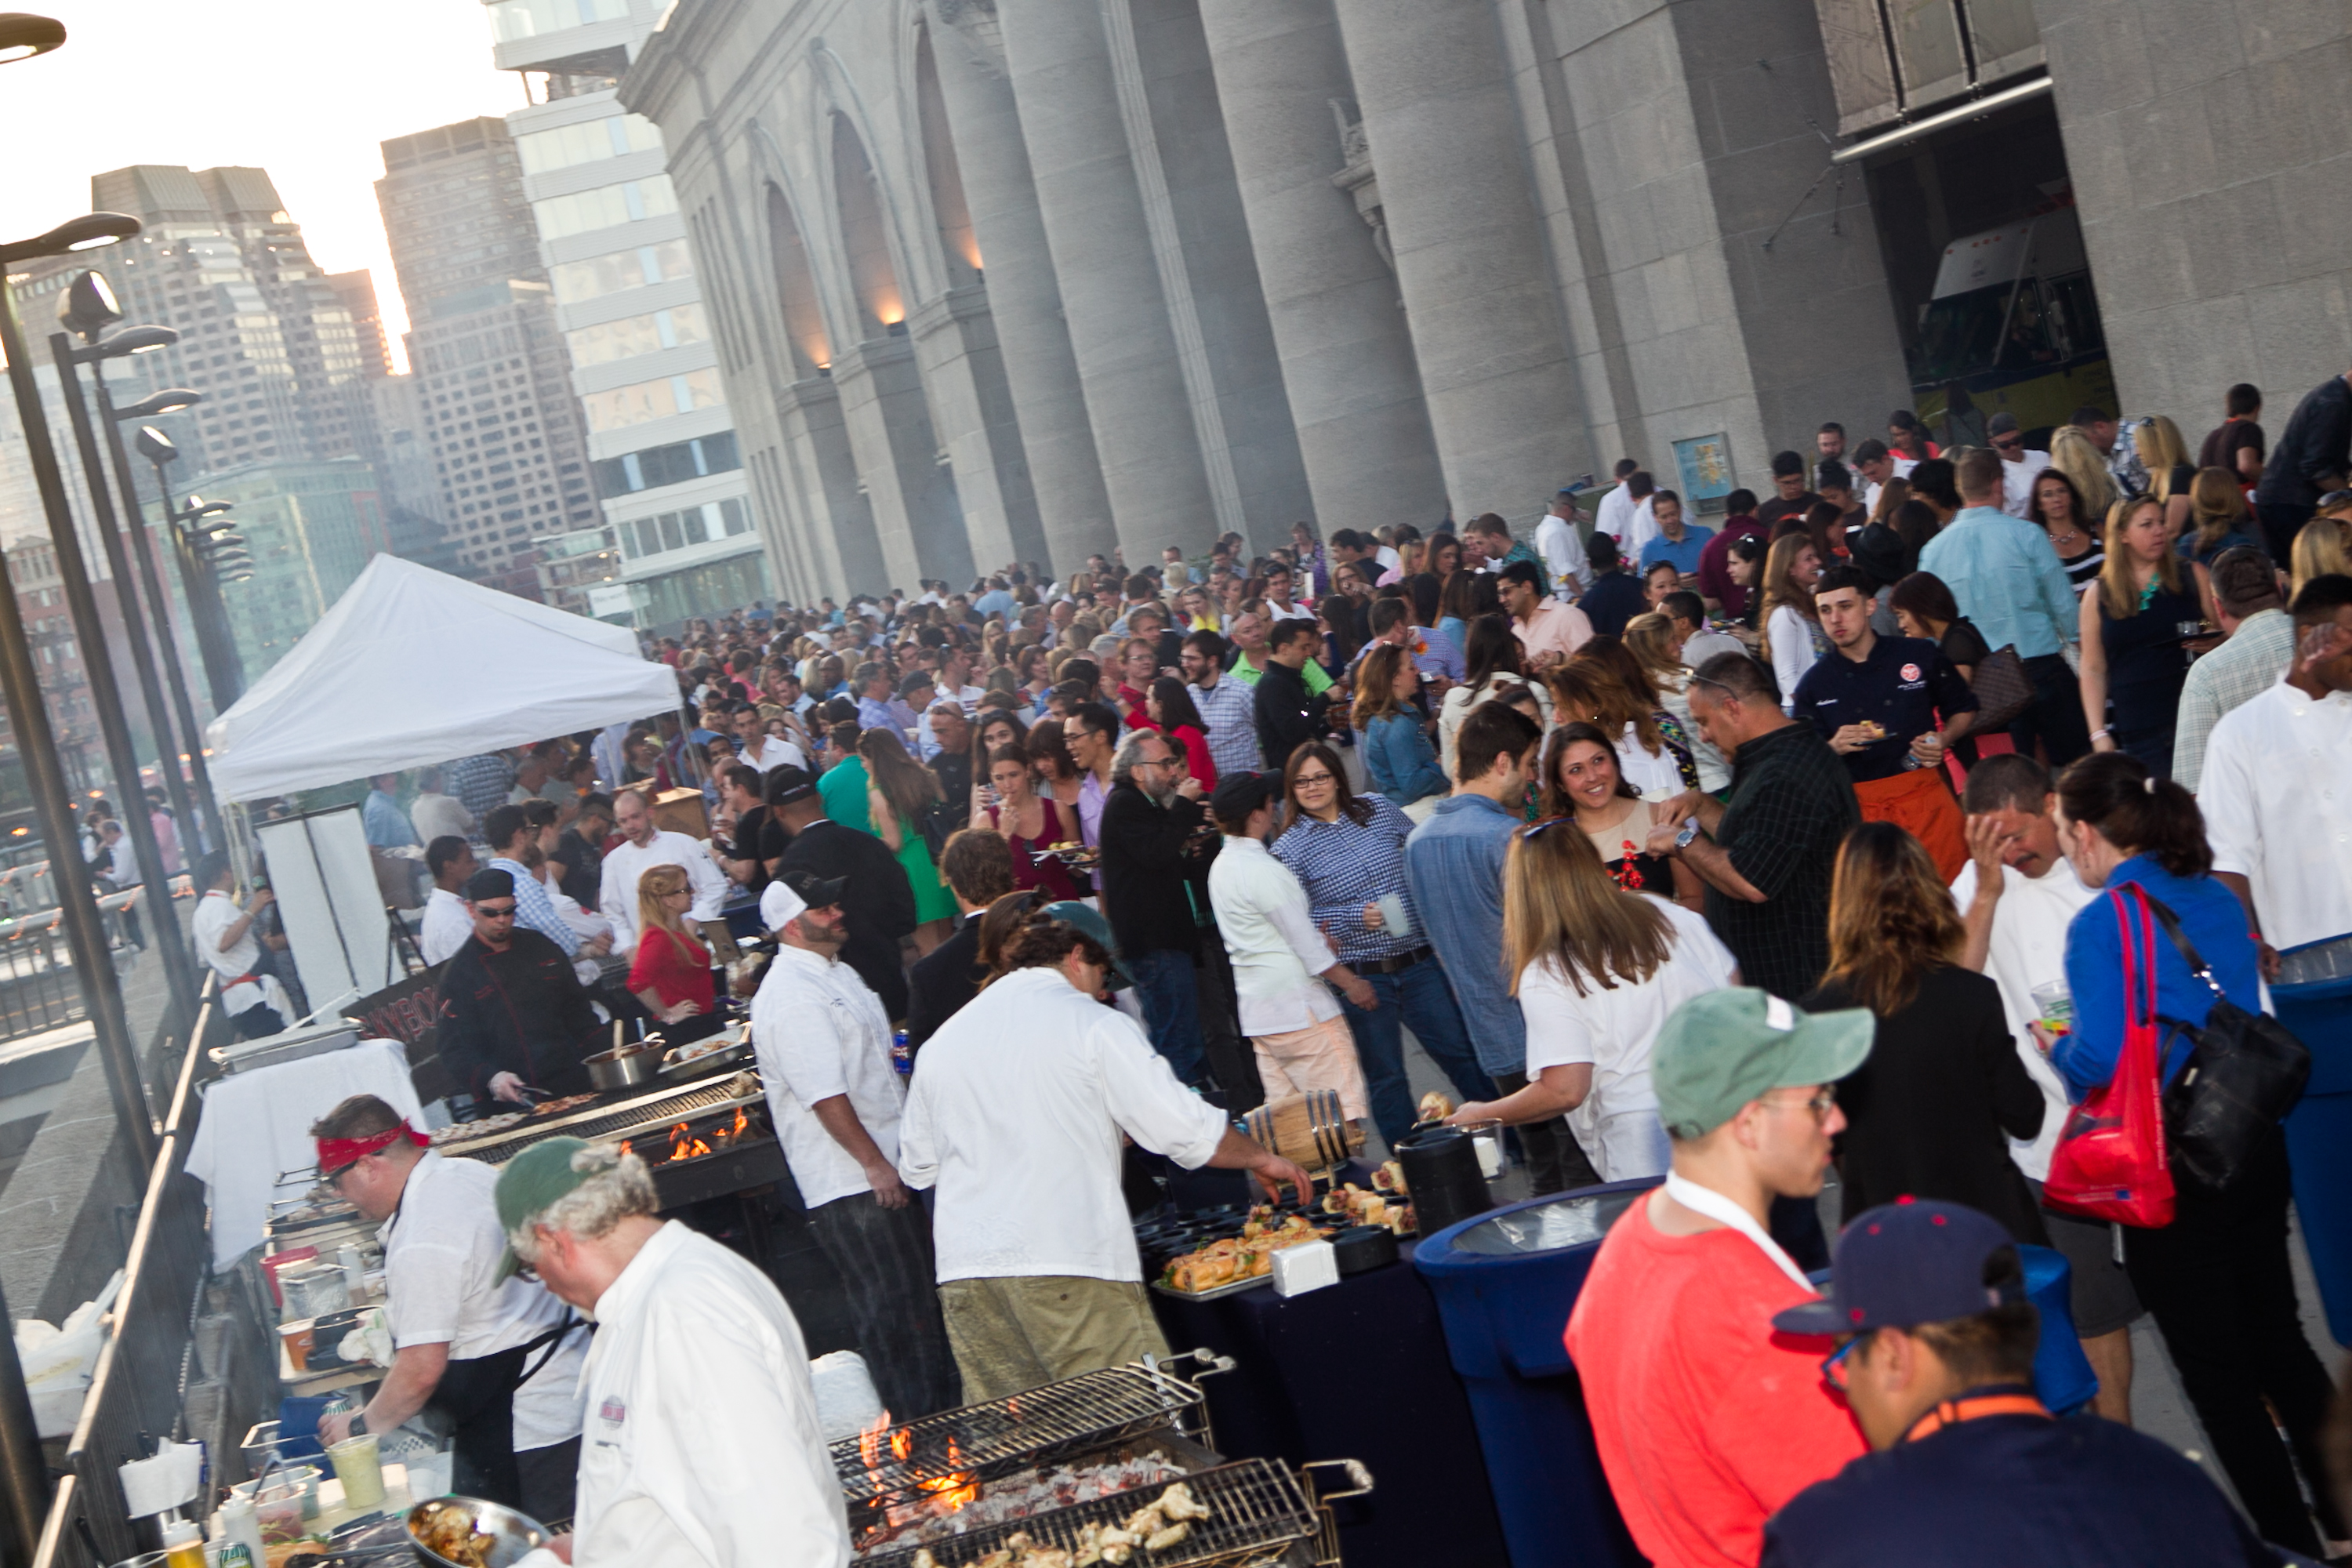 http://www.eventbrite.com/e/19th-annual-chefs-in-shorts-tickets-25407934817?aff=ebrowse